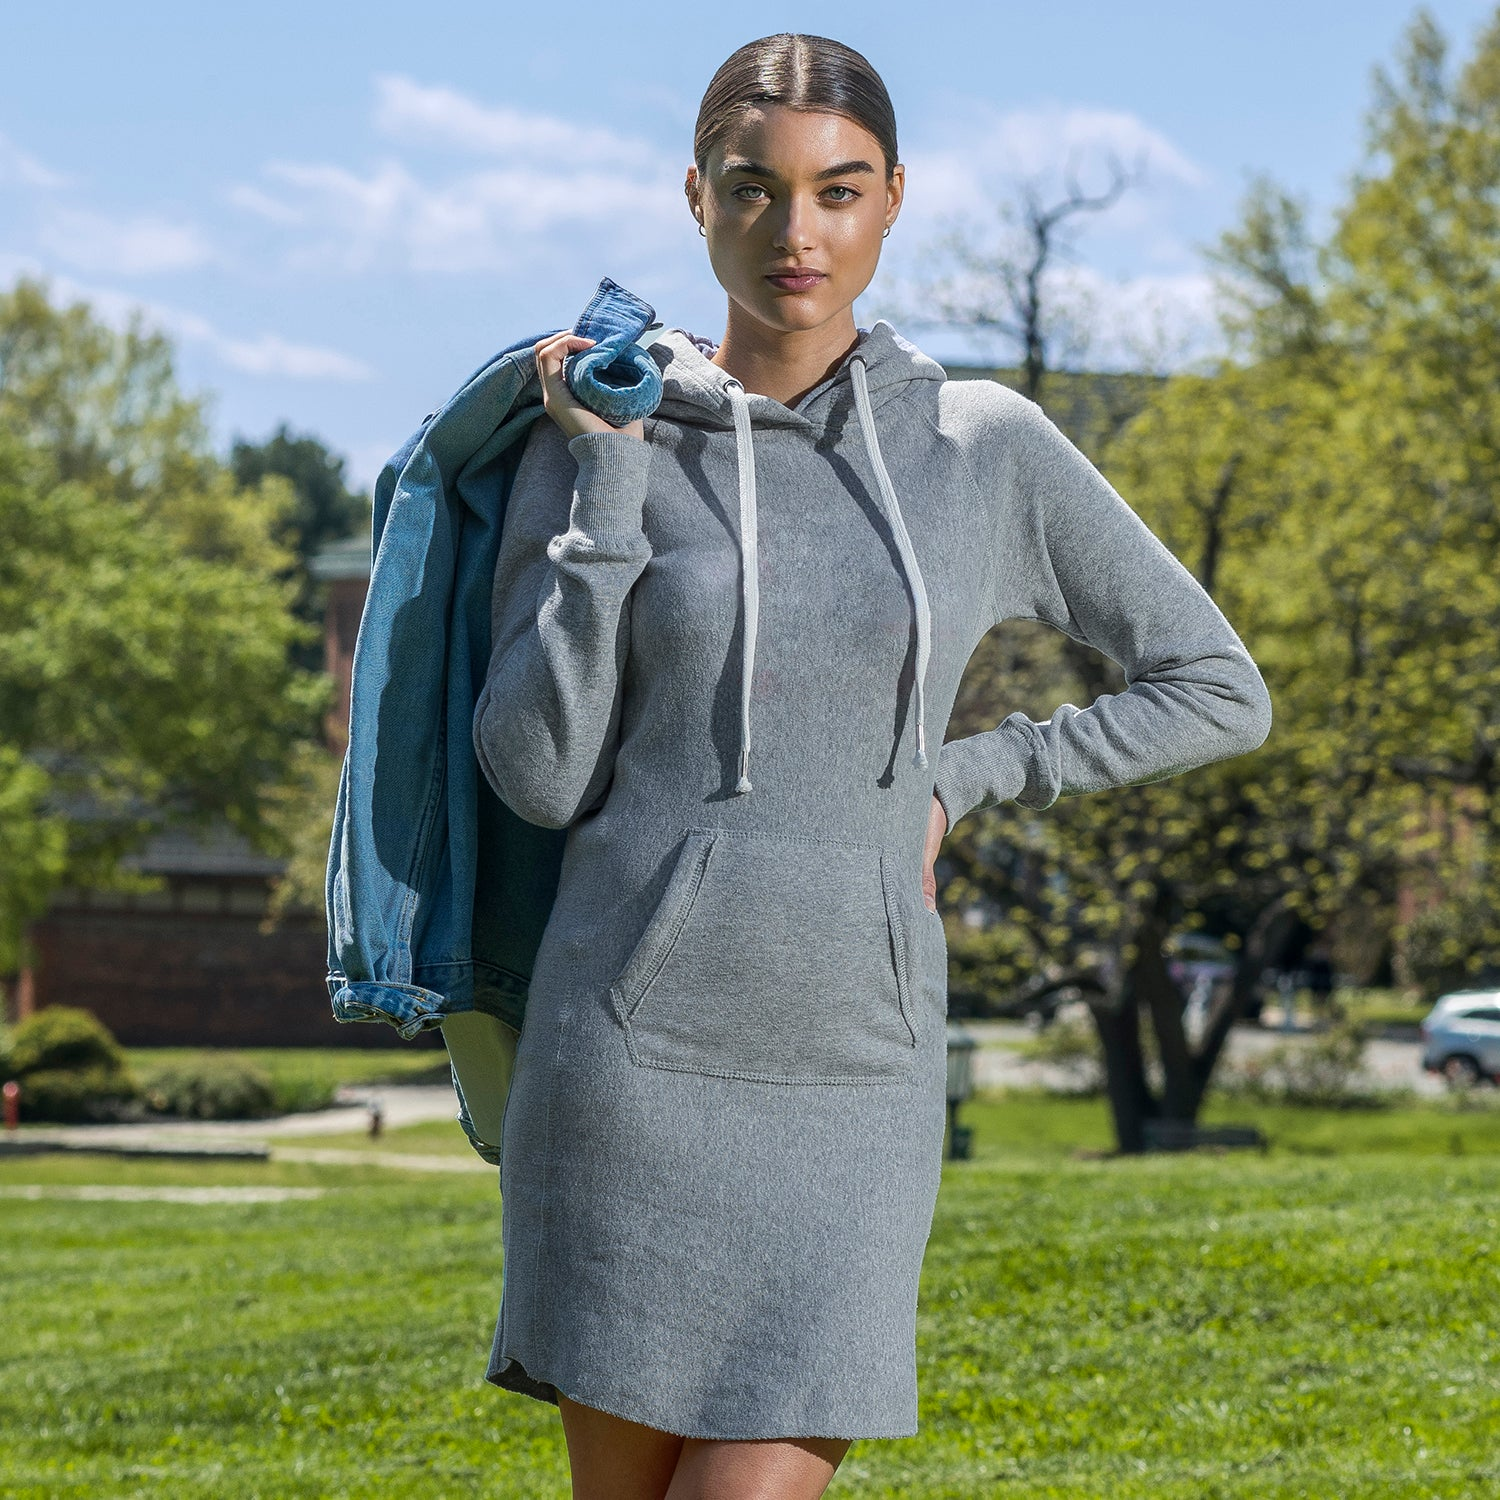 W2340 - Suzie Sweatshirt Dress